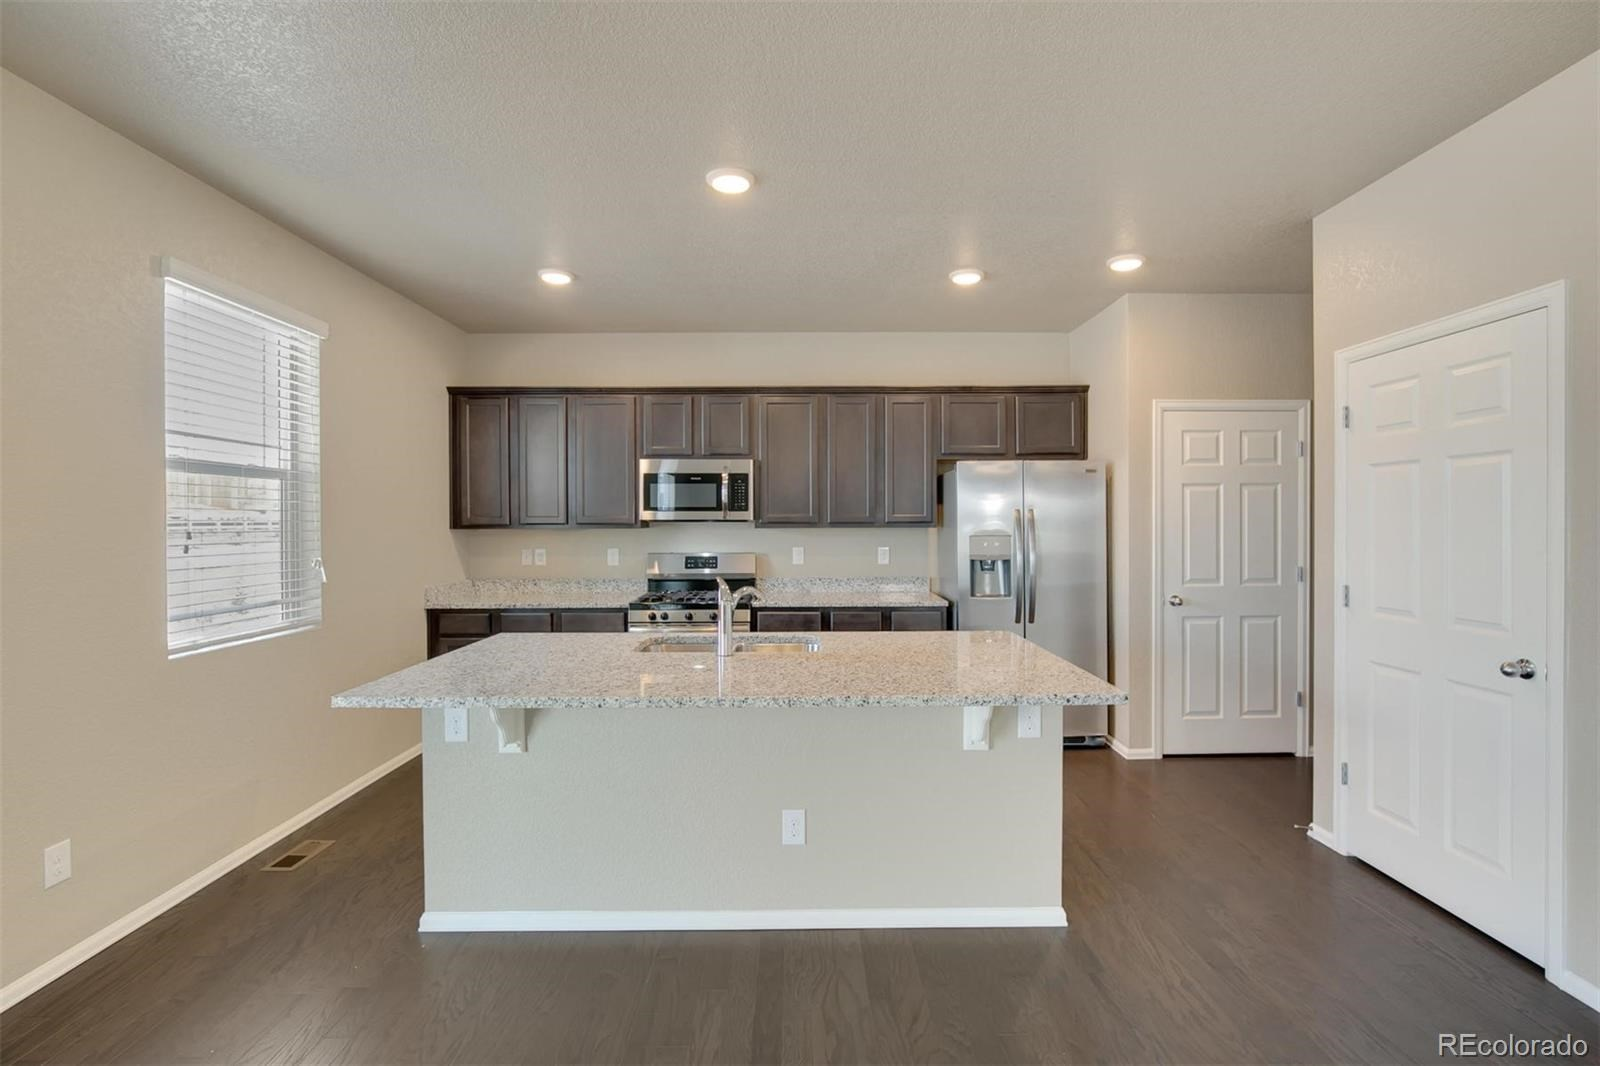 MLS# 4867430 - 6 - 915 Camberly Drive, Windsor, CO 80550